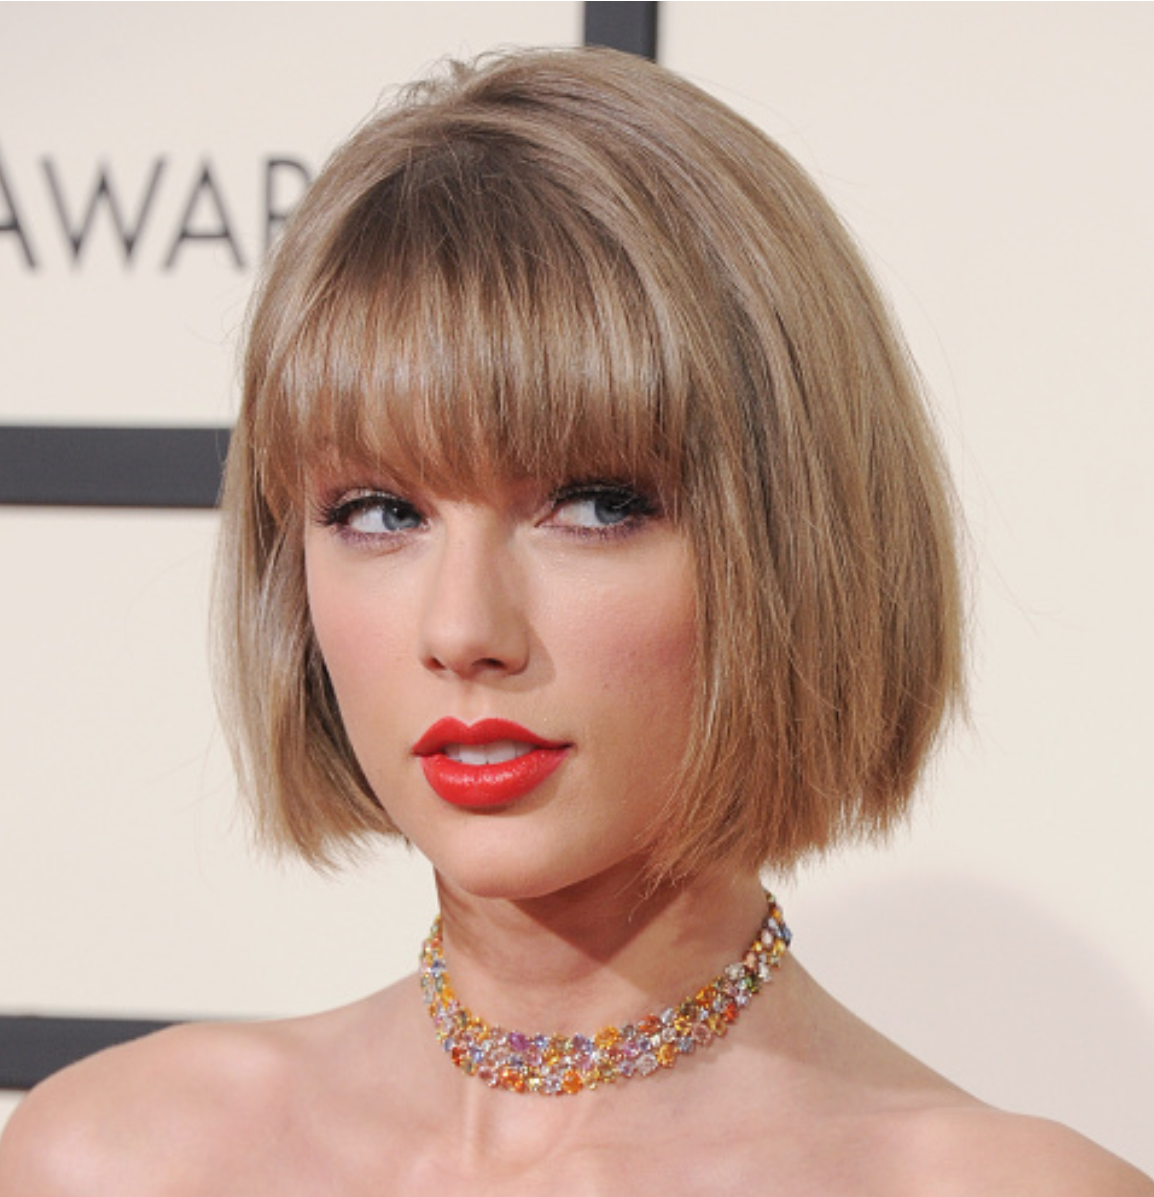 Taylor Swift Short Bob With Straight Bangs Taylor Swift Short Hair Short Hair Styles Short Hair With Bangs